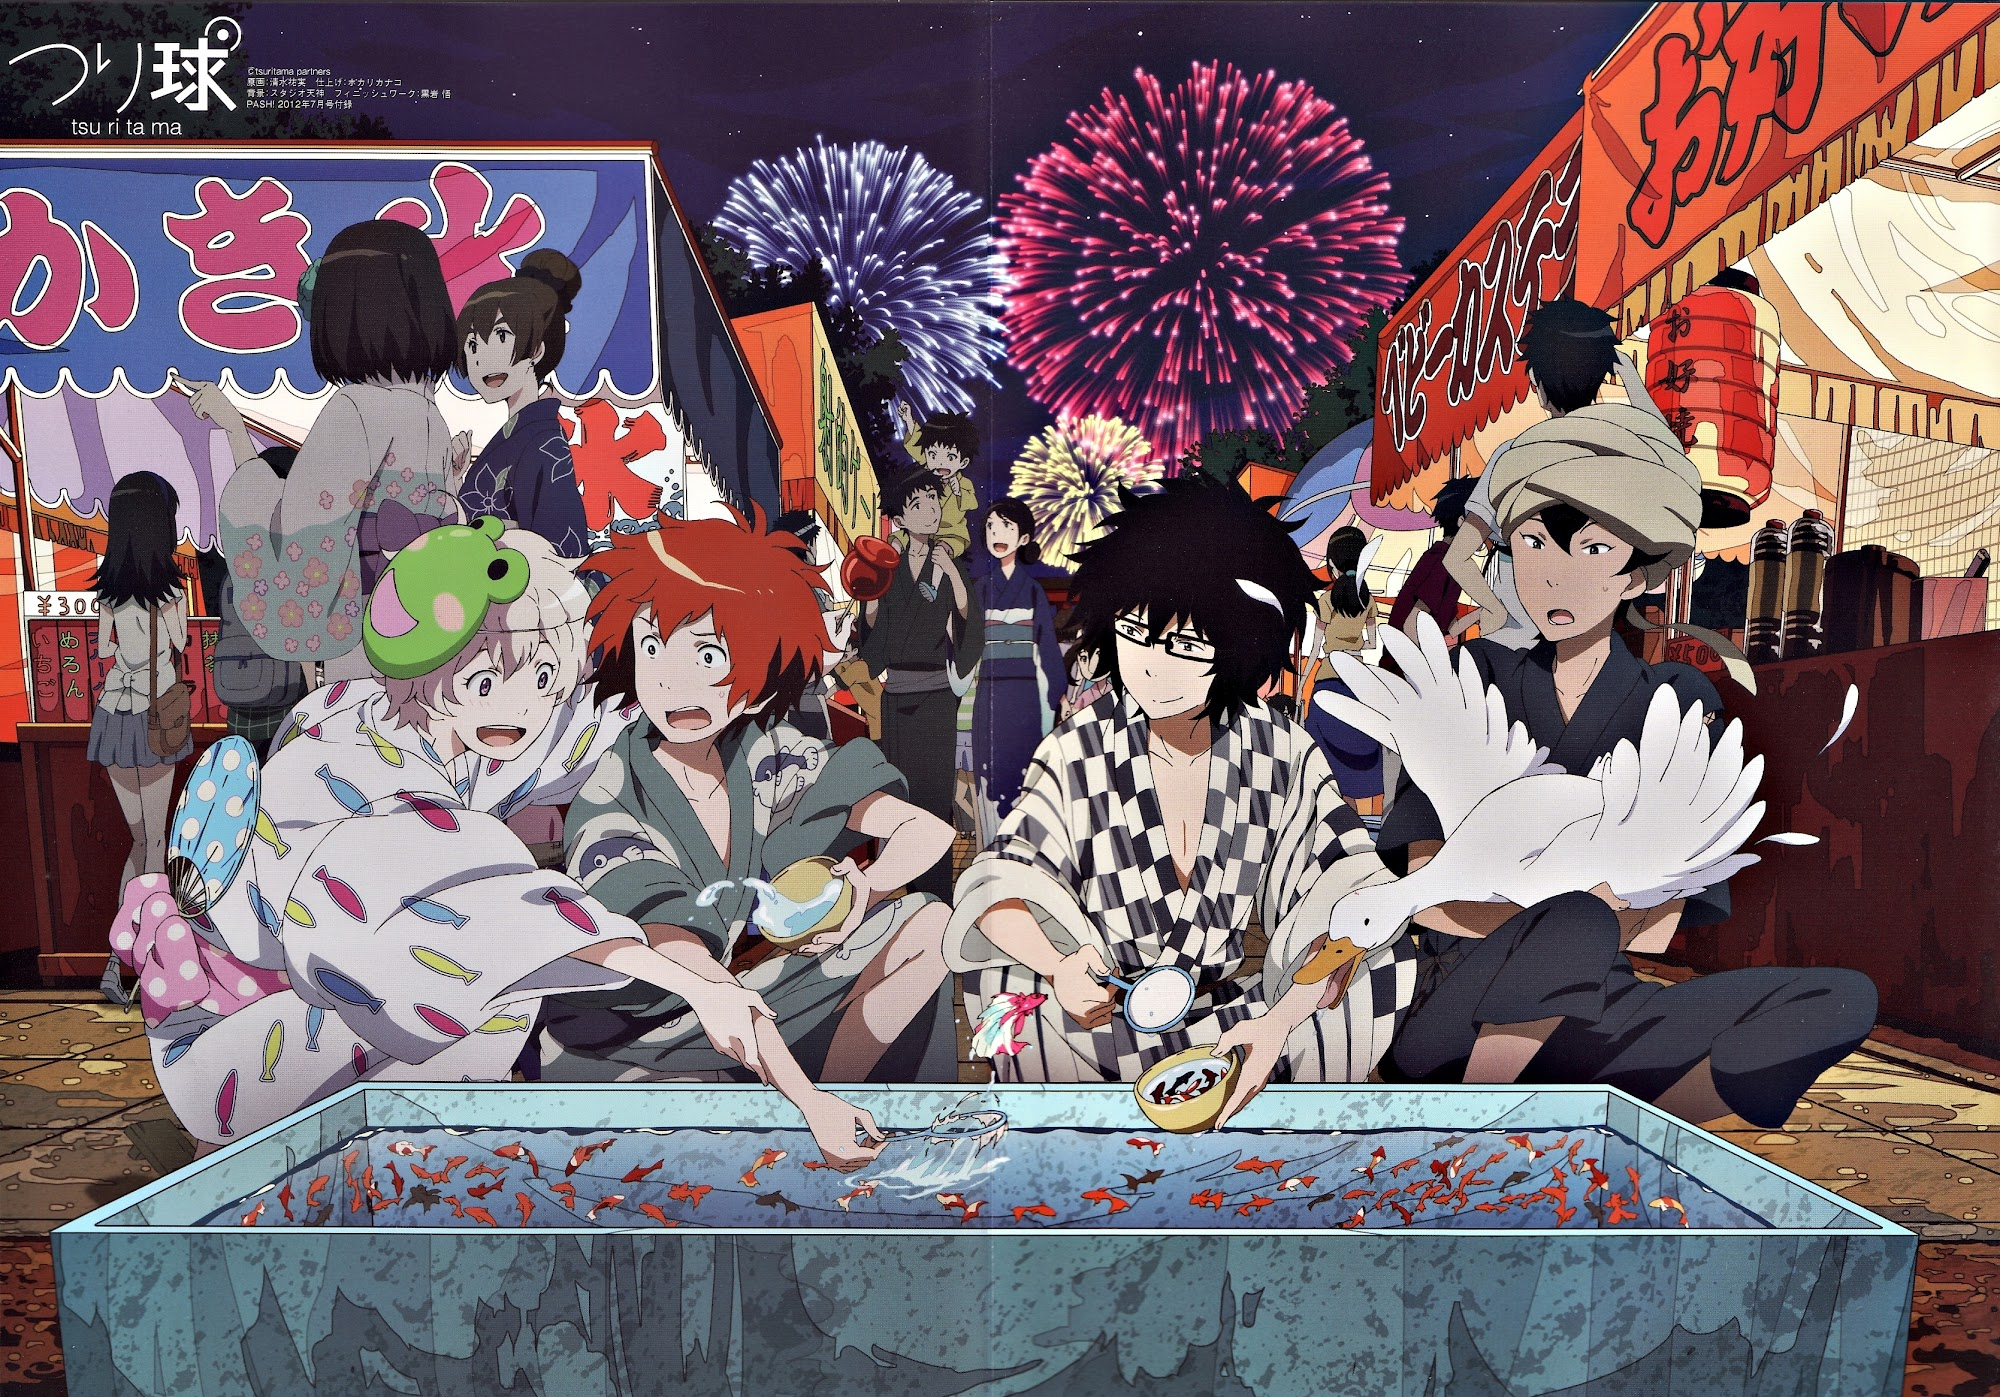 The four leads of Tsuritama at a summer festival, crouched at a goldfish-catching tank while fireworks go off in the background